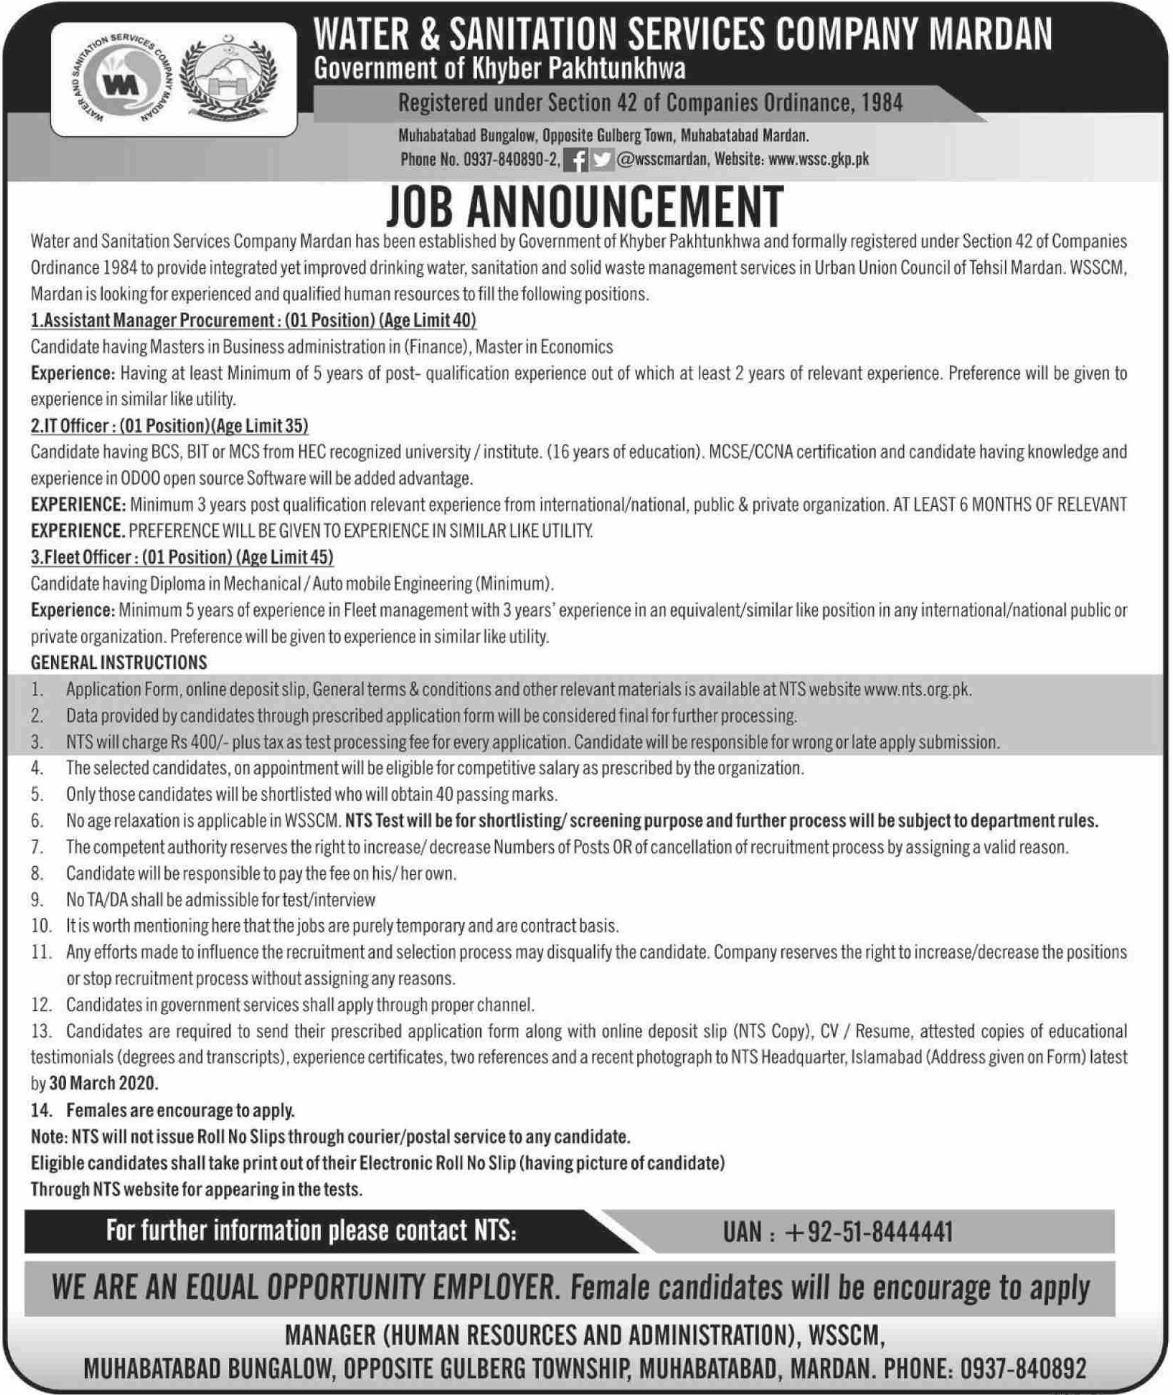 Water & Sanitation Services Company Mardan Jobs 2020 Apply via NTS